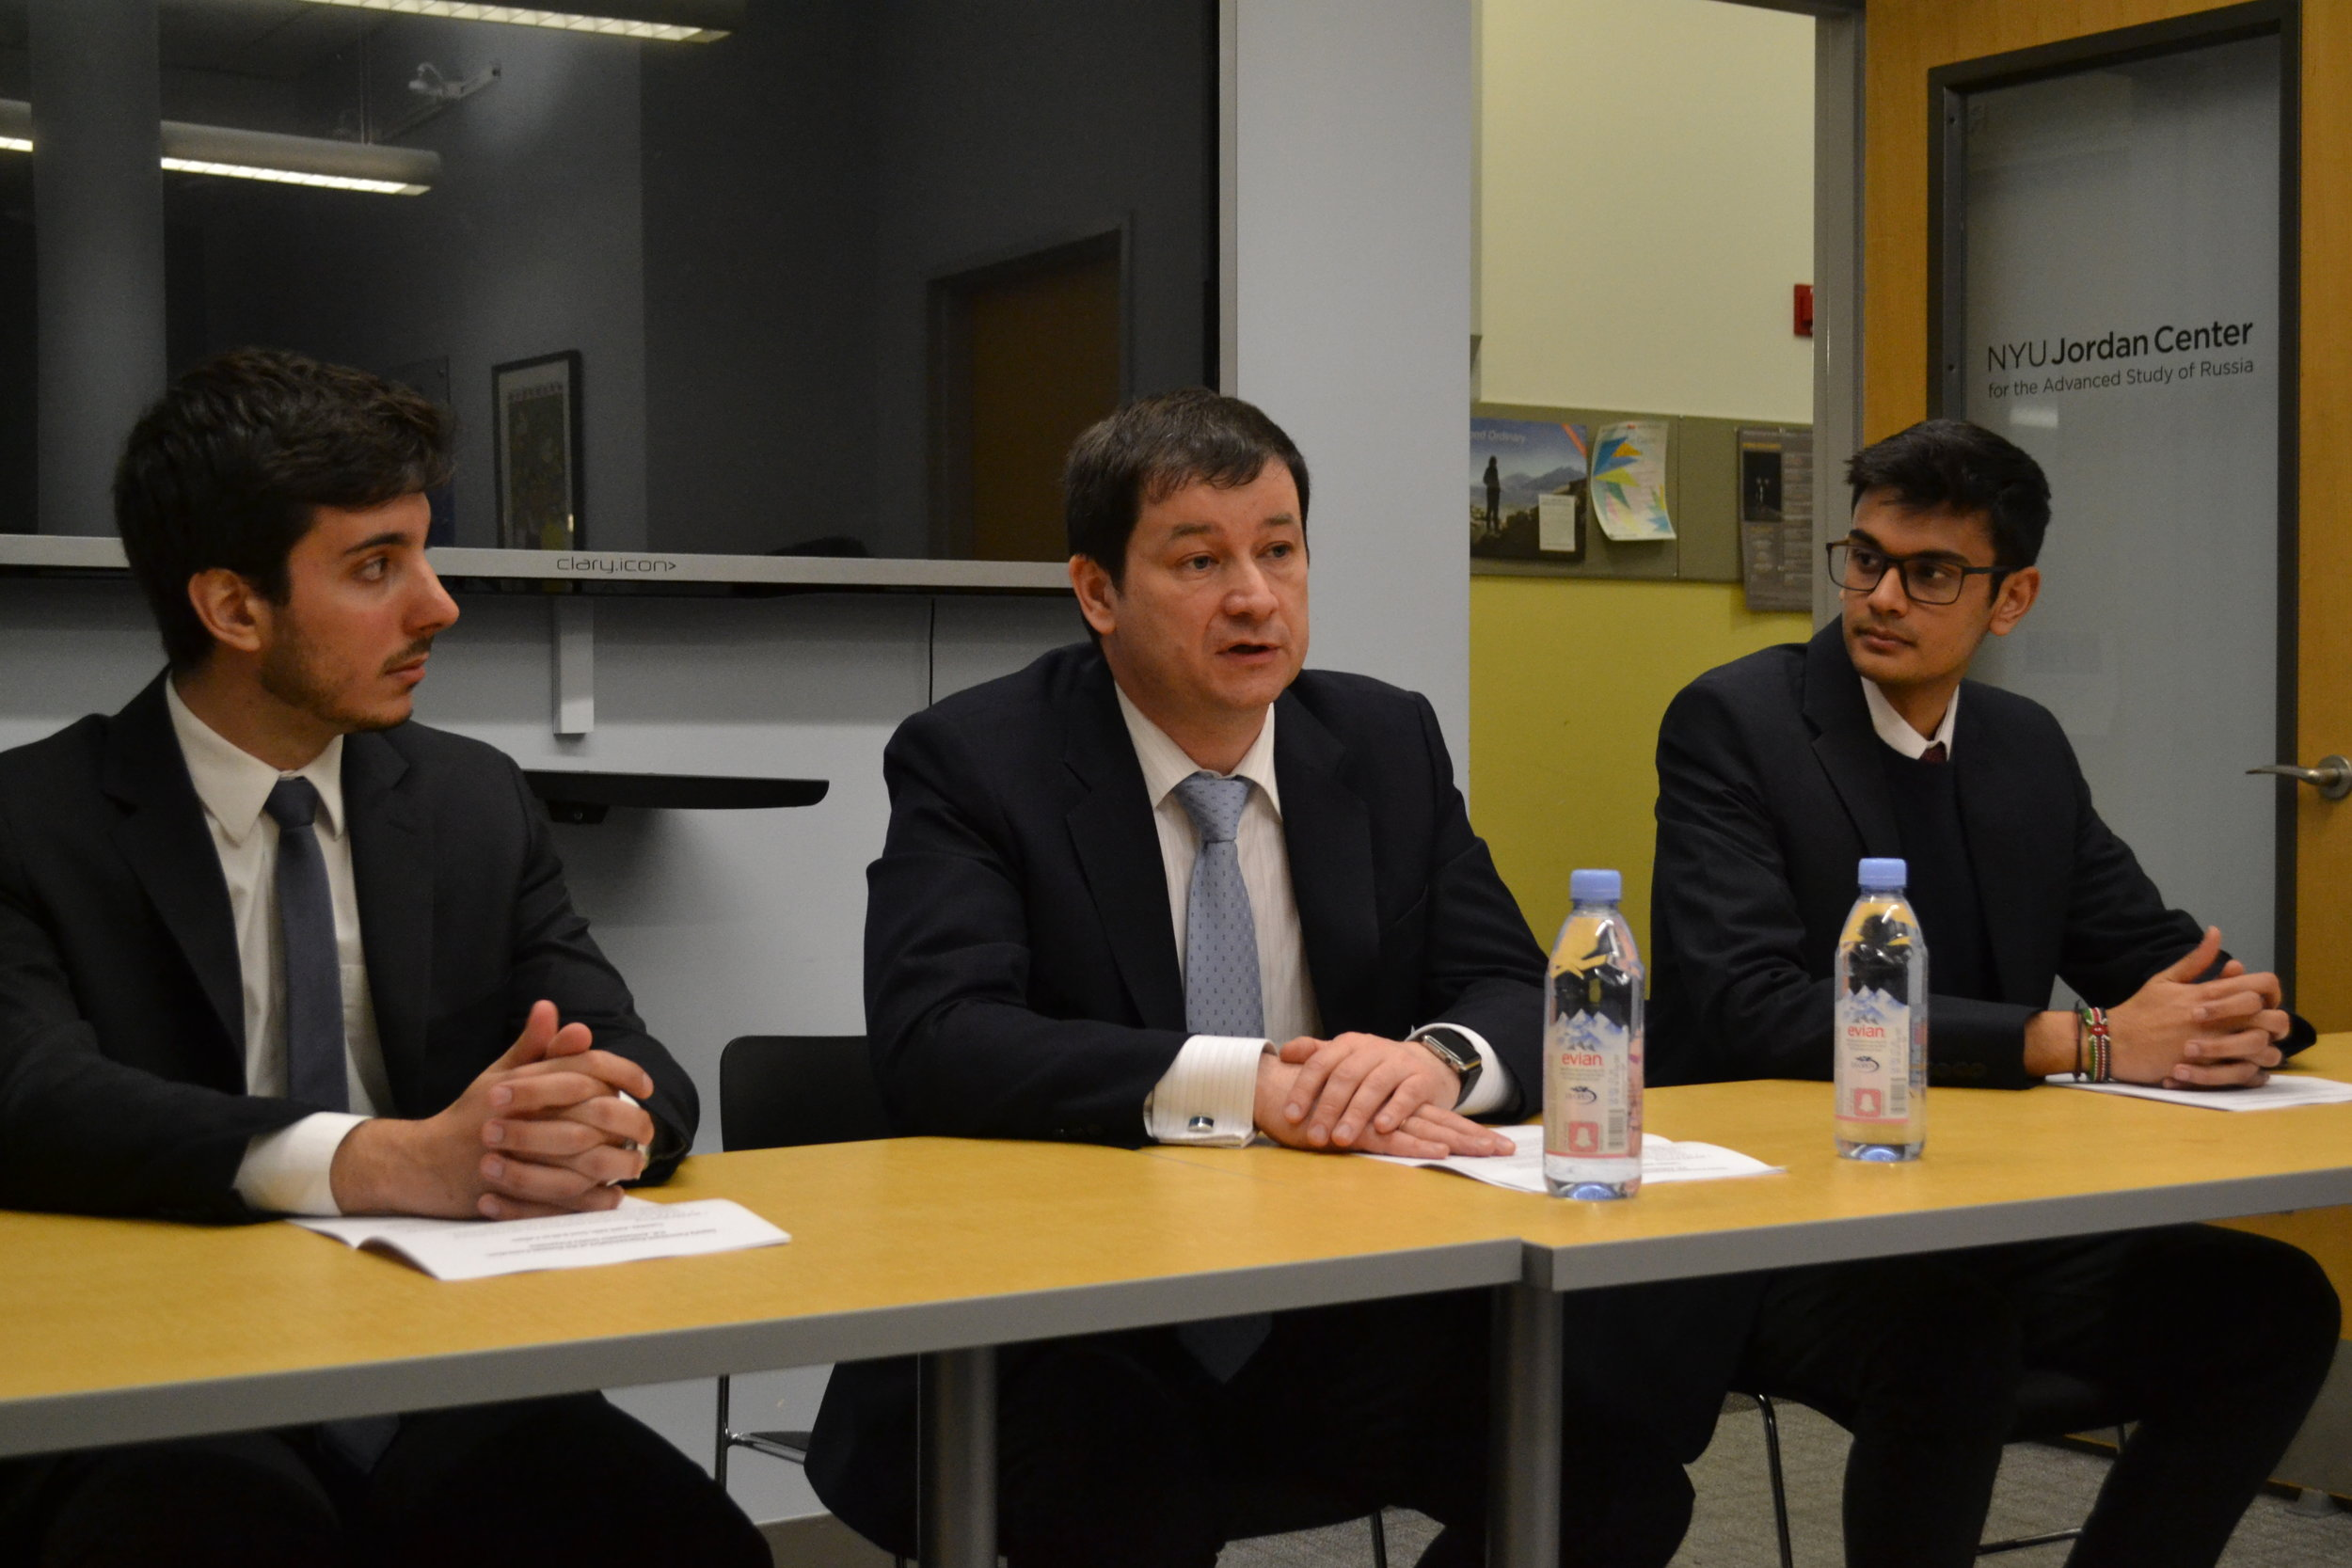 Discussion with the Russian Federation's Deputy Permanent Representative to the UN, H.E. Dmitry Polyanskiy.